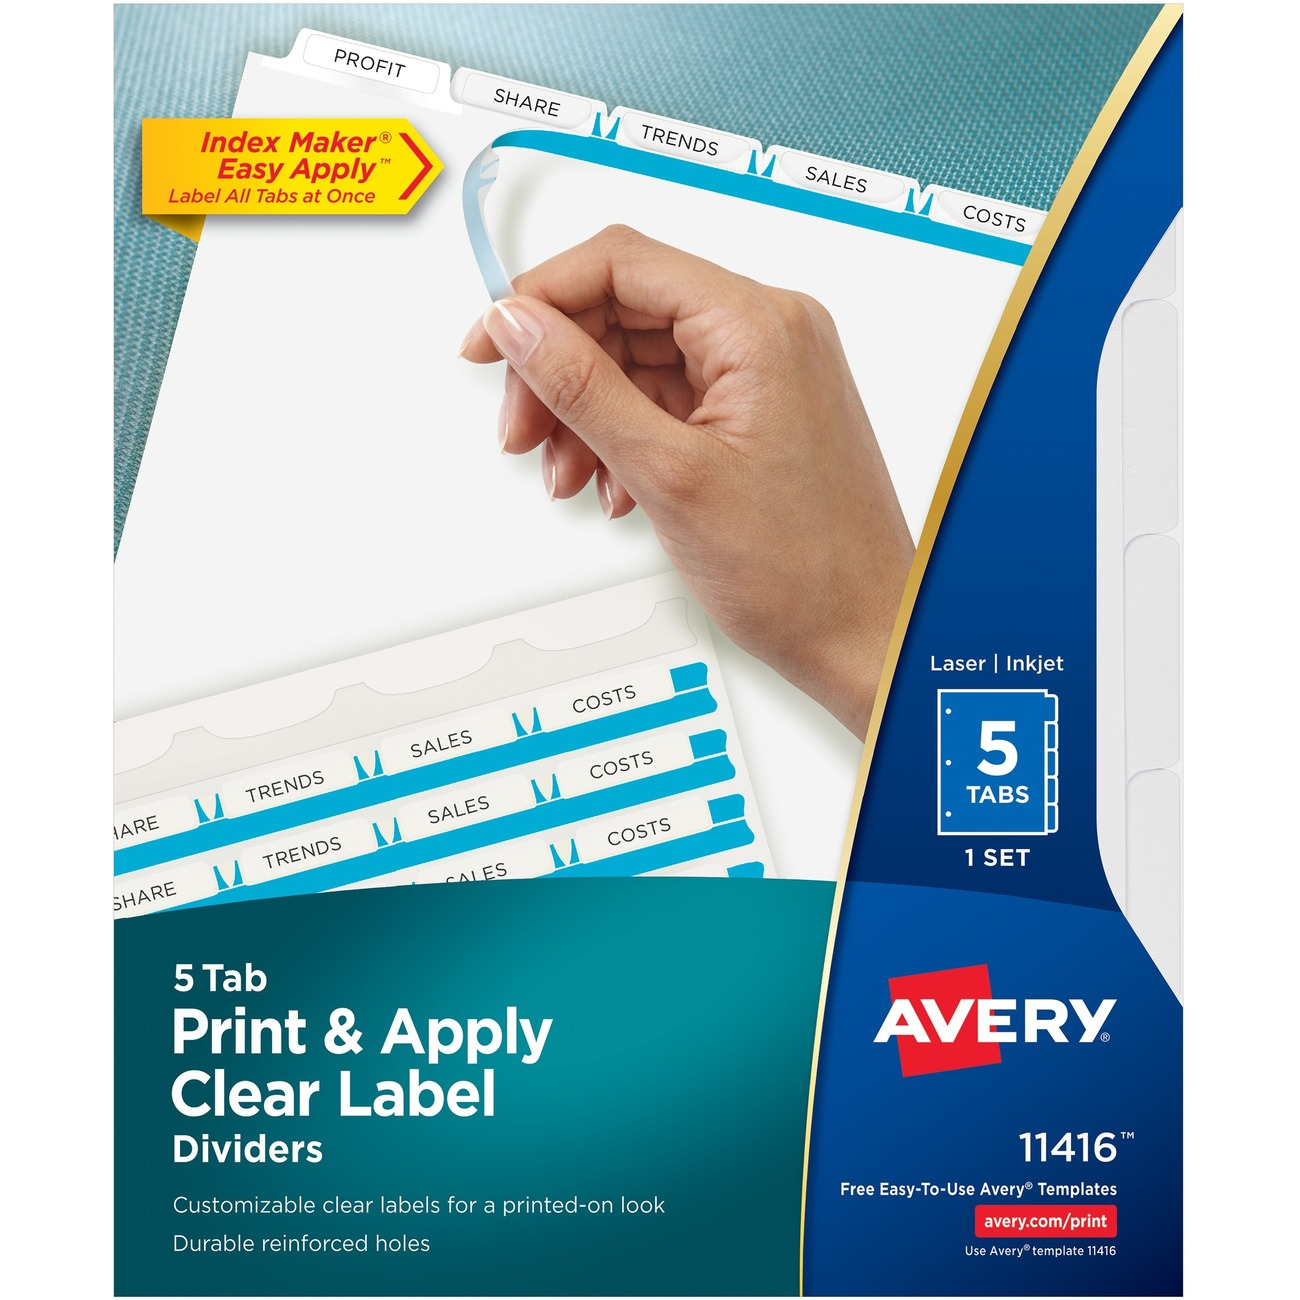 Avery Print Apply Clear Label Dividers Index Maker R Easy Apply Tm Printable Label Strip 5 White Tabs 1 Set 11416 5 Blank Tab S 5